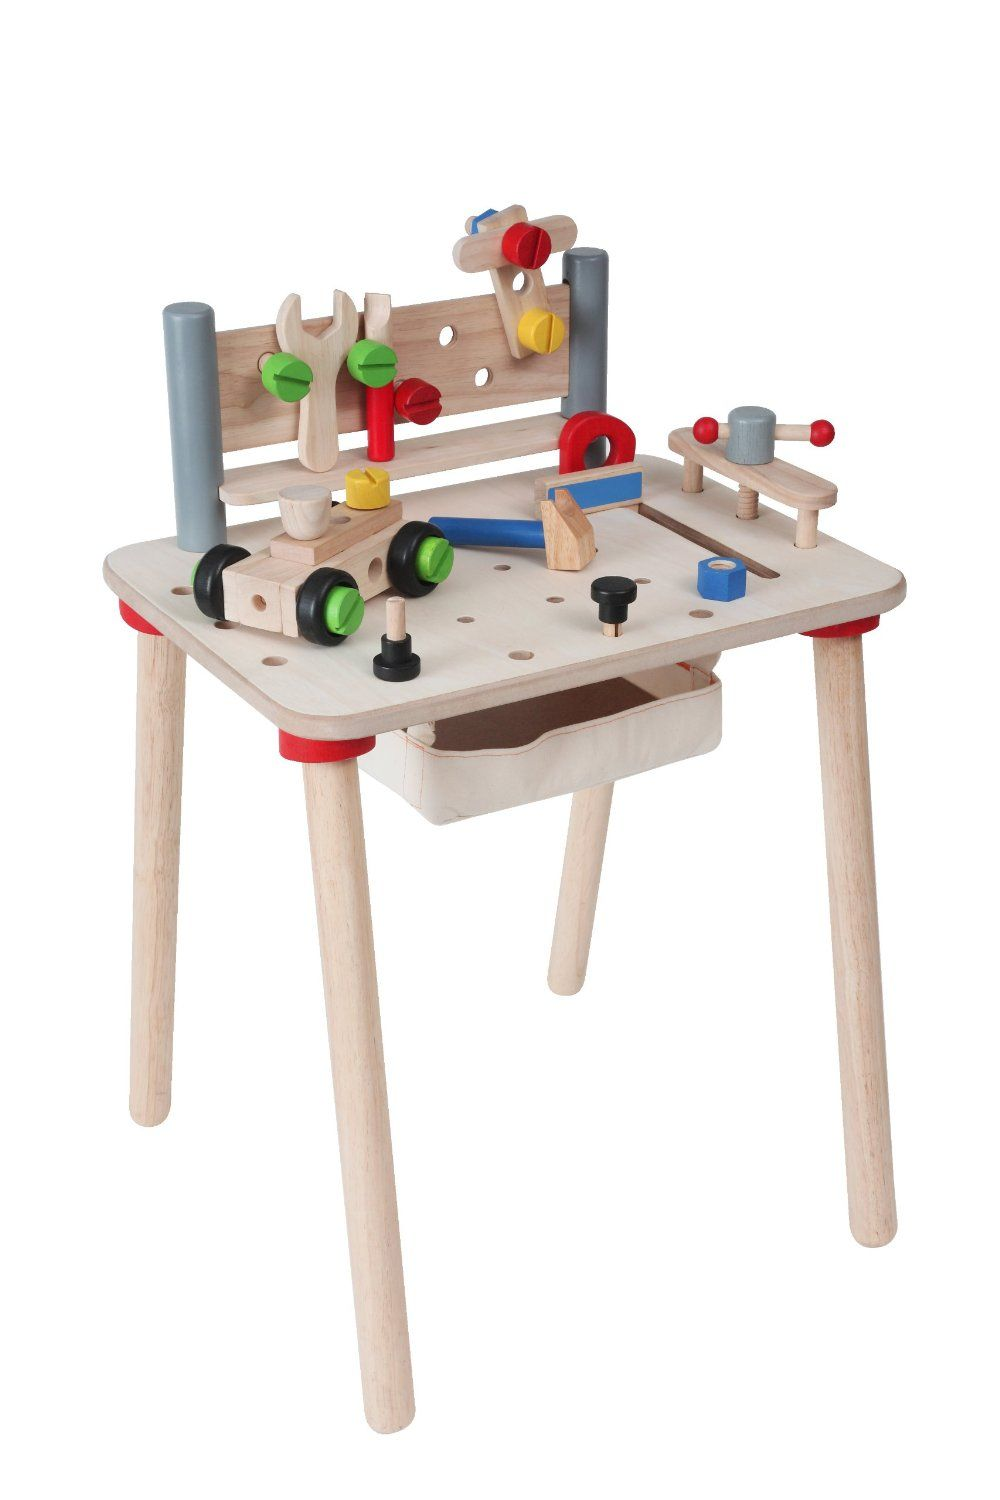 Perfect The Plan Toys Wooden Workbench Is Made From Natural Rubber Wood With  Lead Free,water Based Paints And Formaldehyde Free Glue